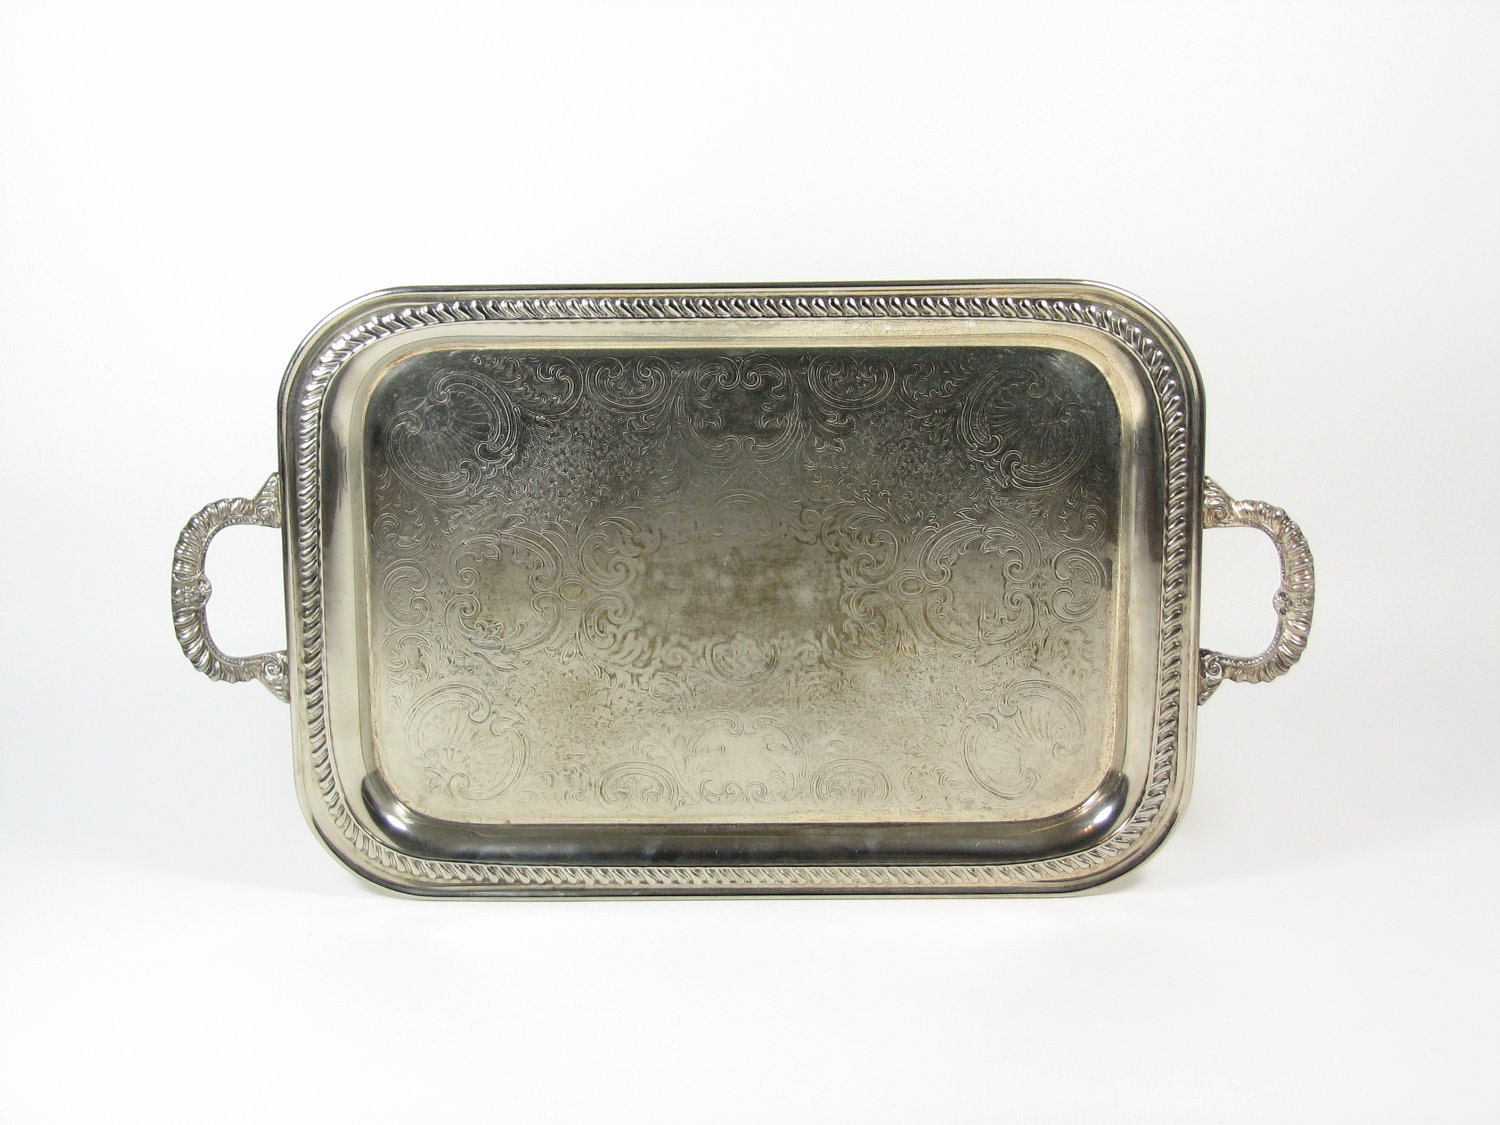 Vintage Silver Serving Tray Platter with Handles Silver Plate